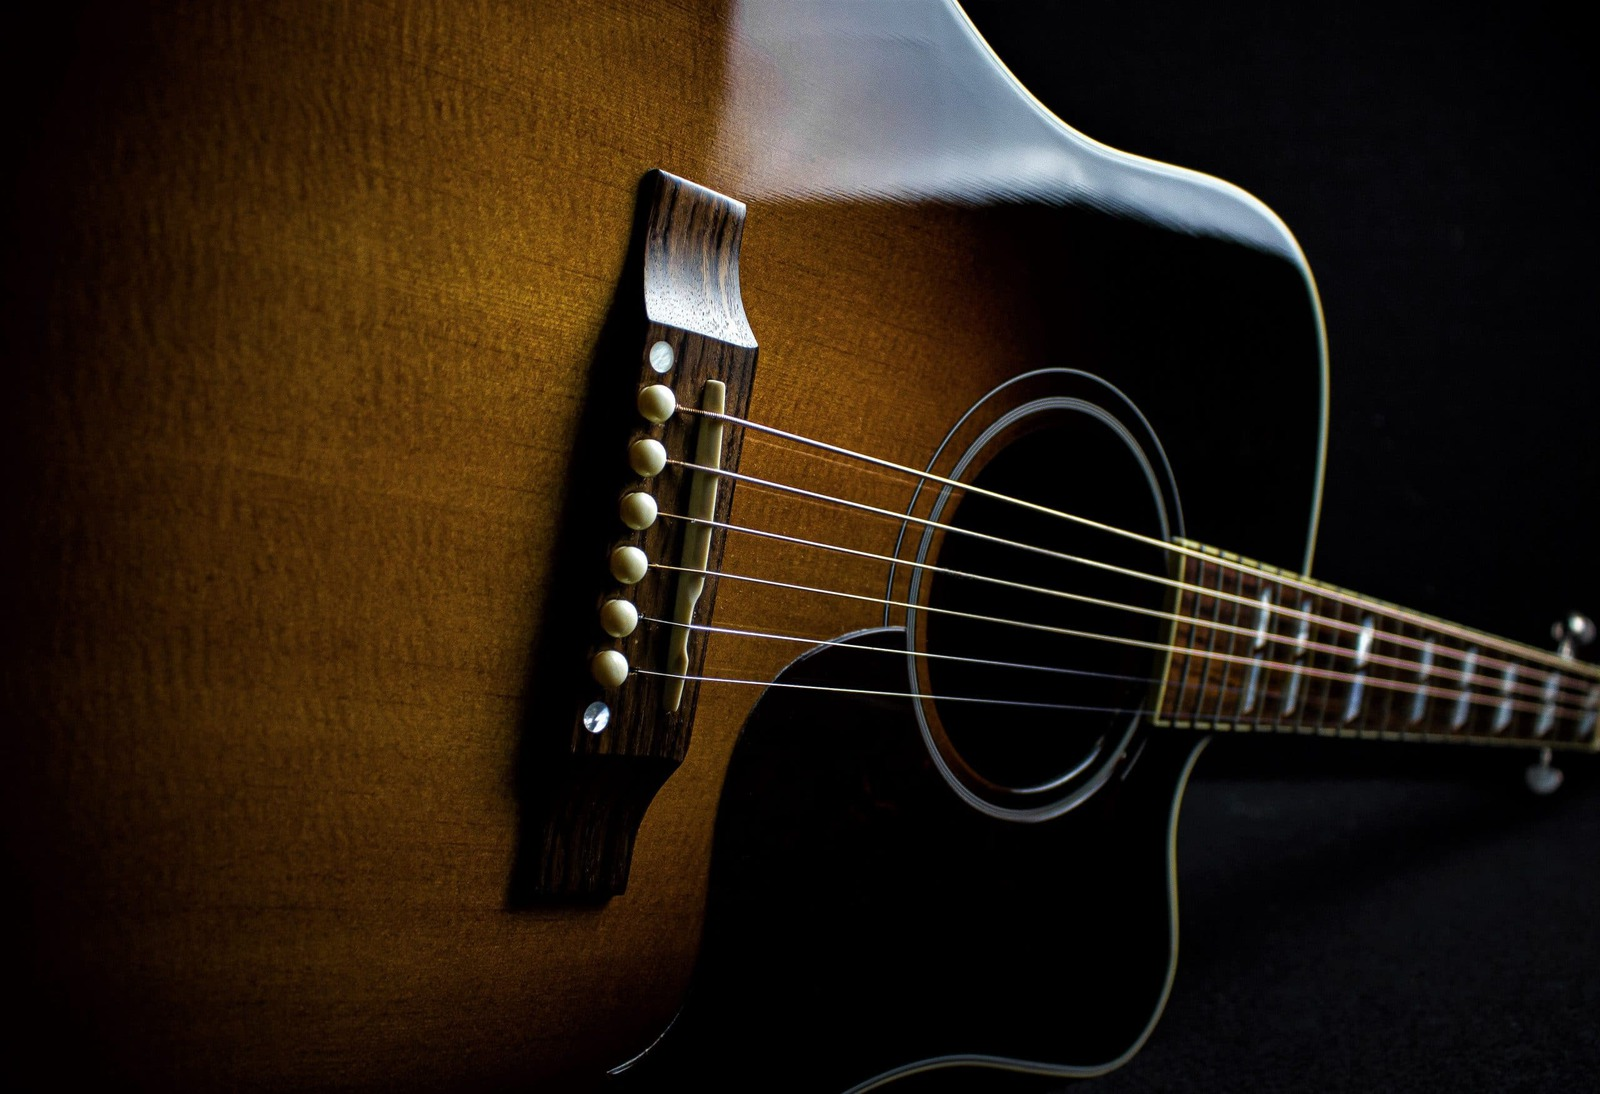 5 Best Acoustic Guitar Amps Under $100 in 2020 – Buyer's Guide